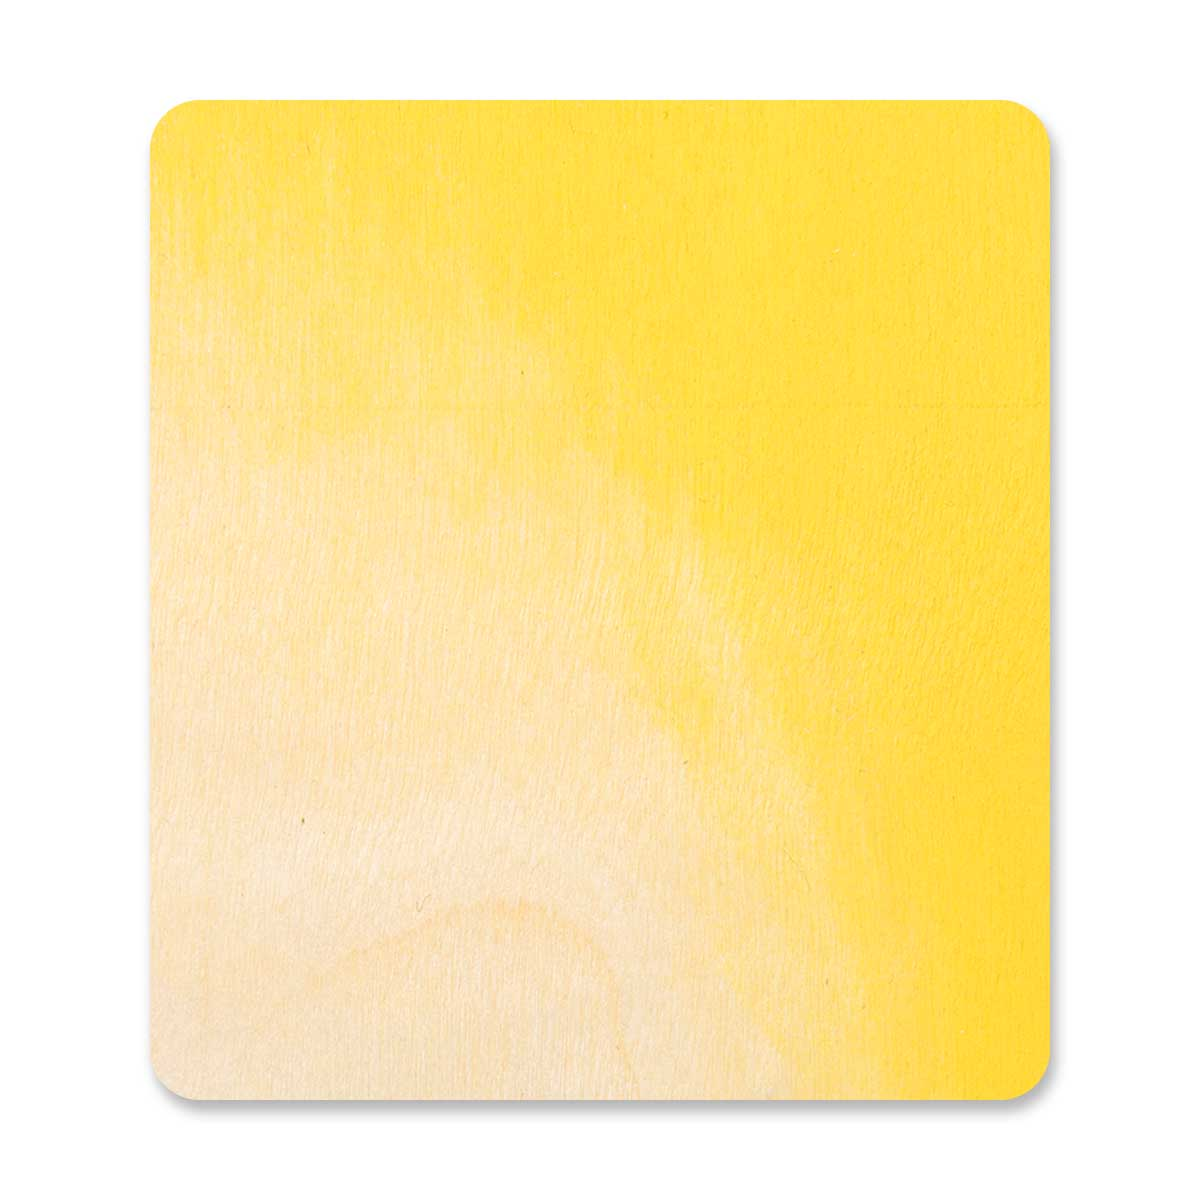 FolkArt ® Watercolor Acrylic Paint™ - Light Yellow, 2 oz.